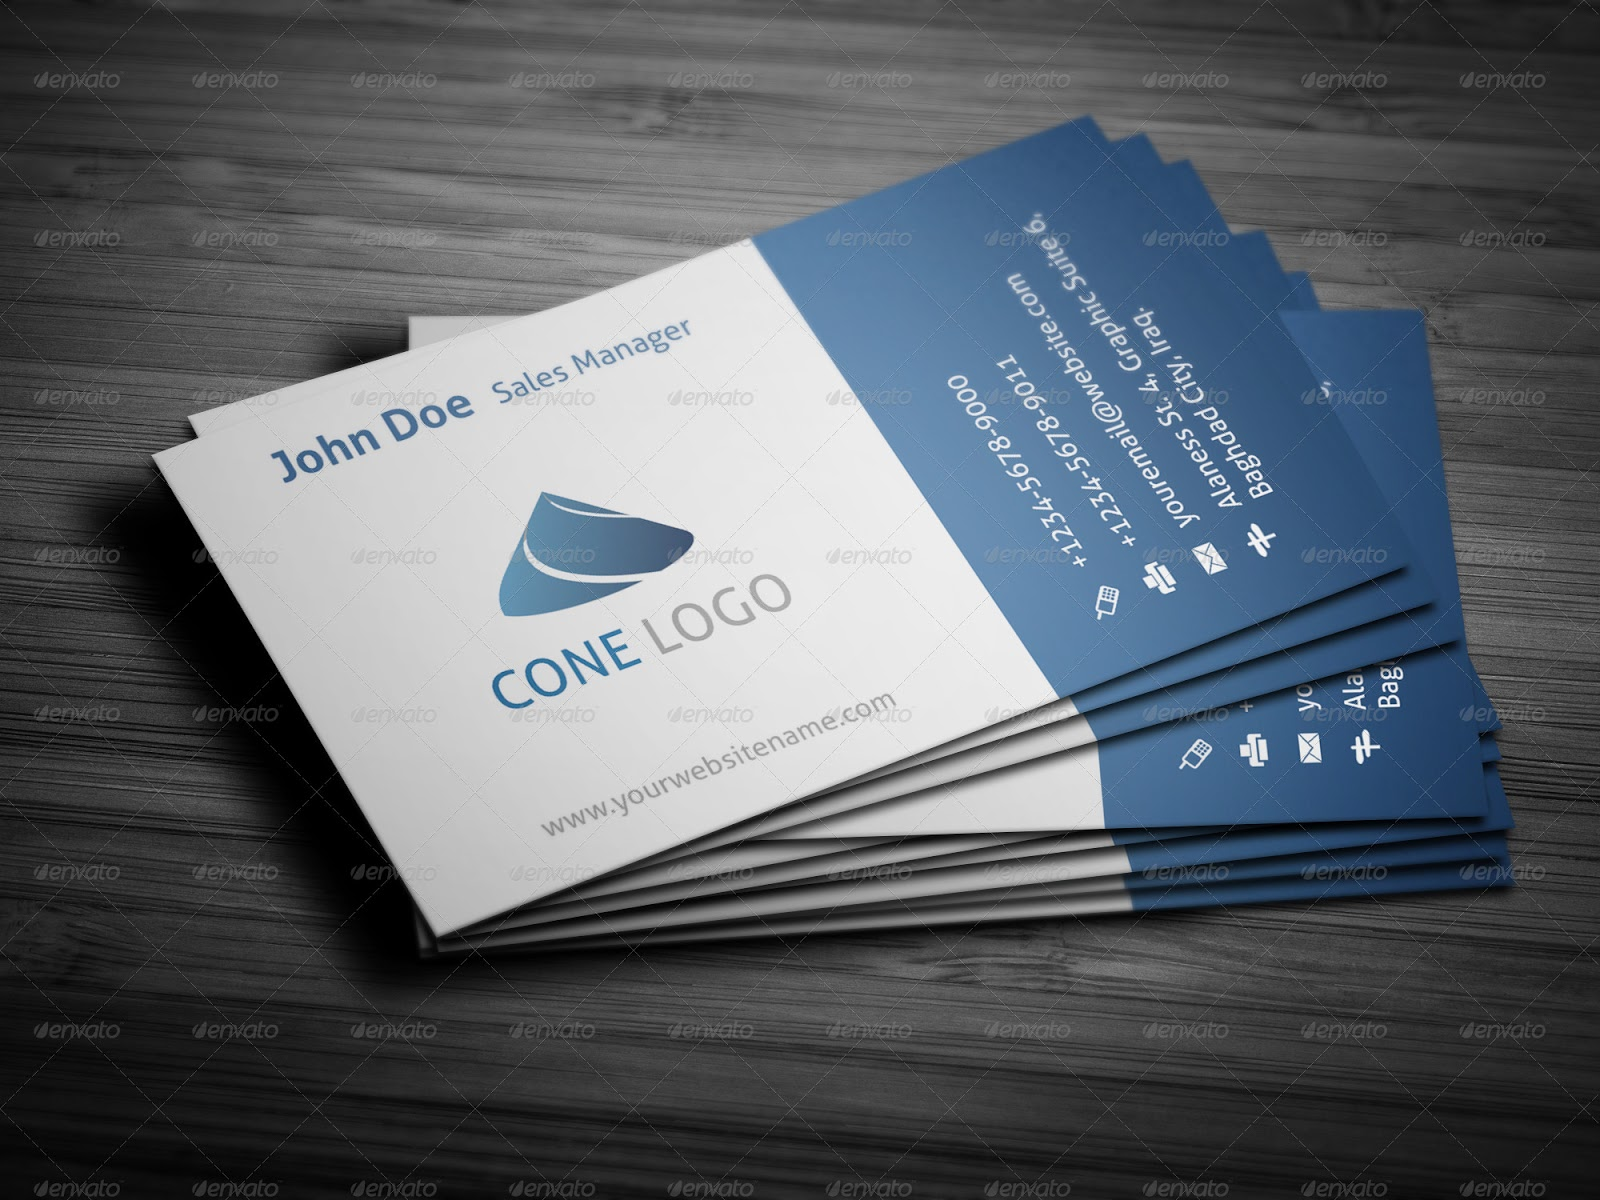 Latest Top 10 Business Cards from Graphicriver | Overwhelming Free Time